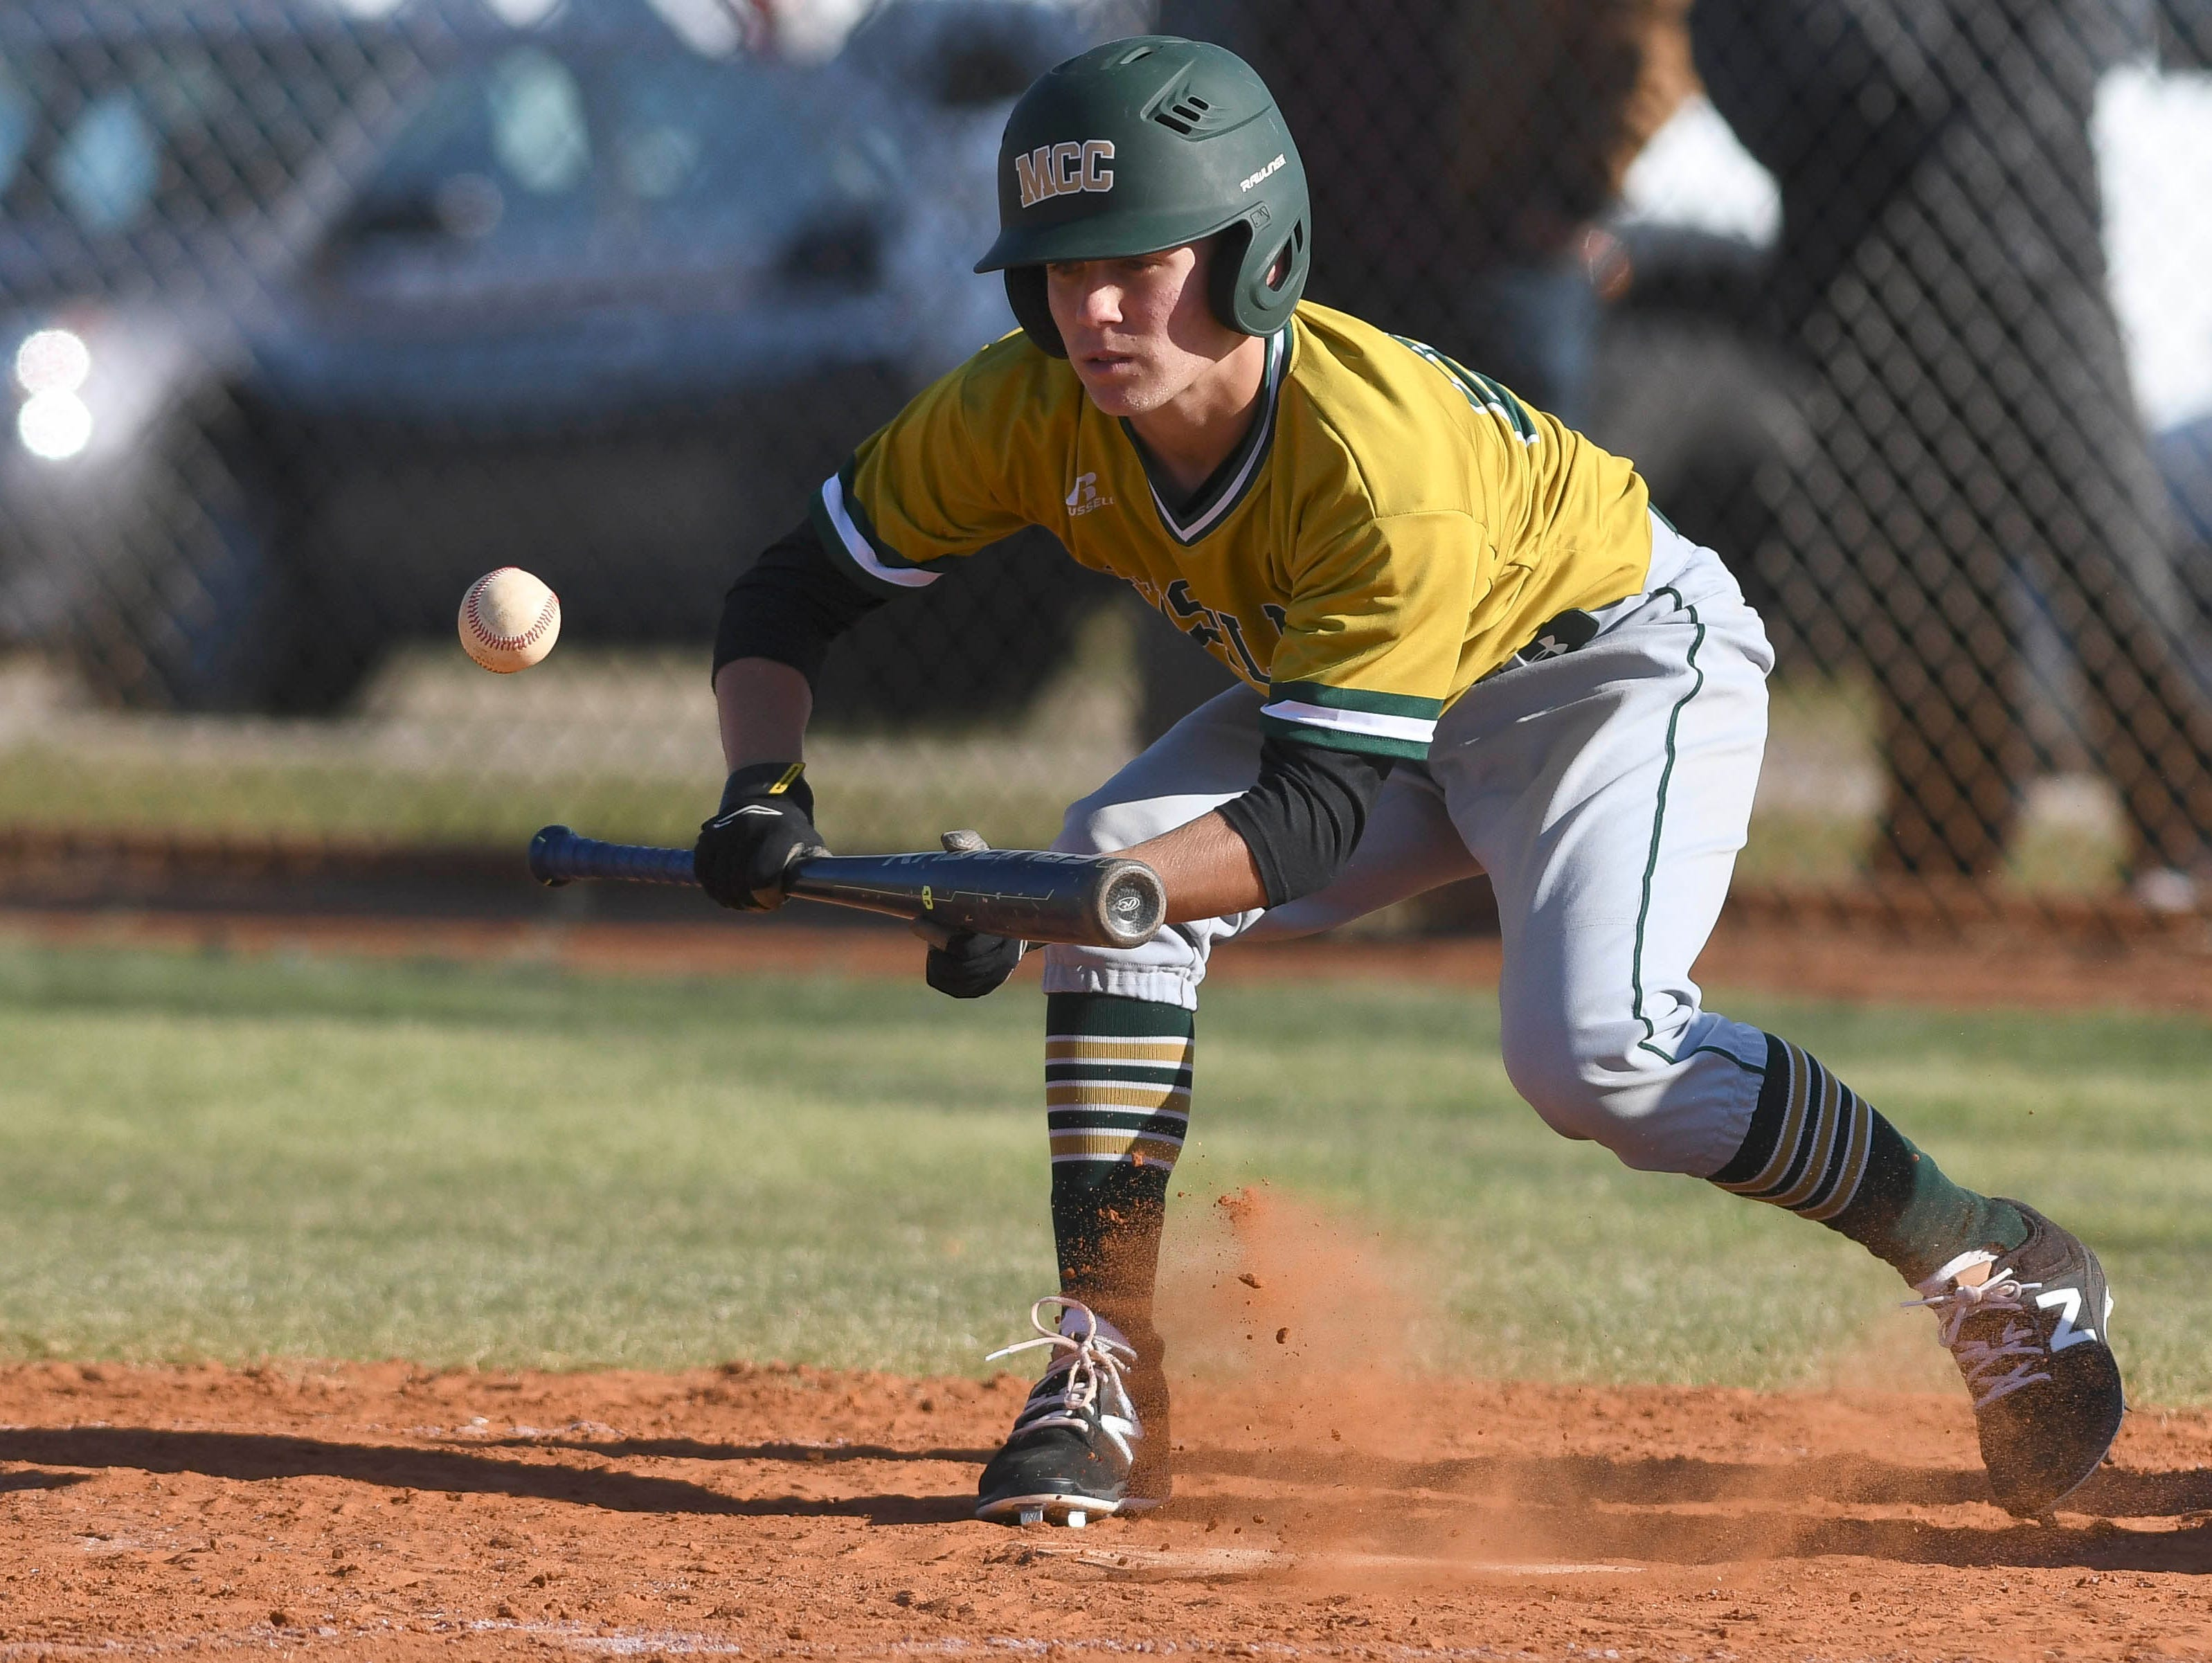 Melbourne Central Catholic's Cam Marzuzzella (26) attempts a bunt during Thursday's game in Melbourne.